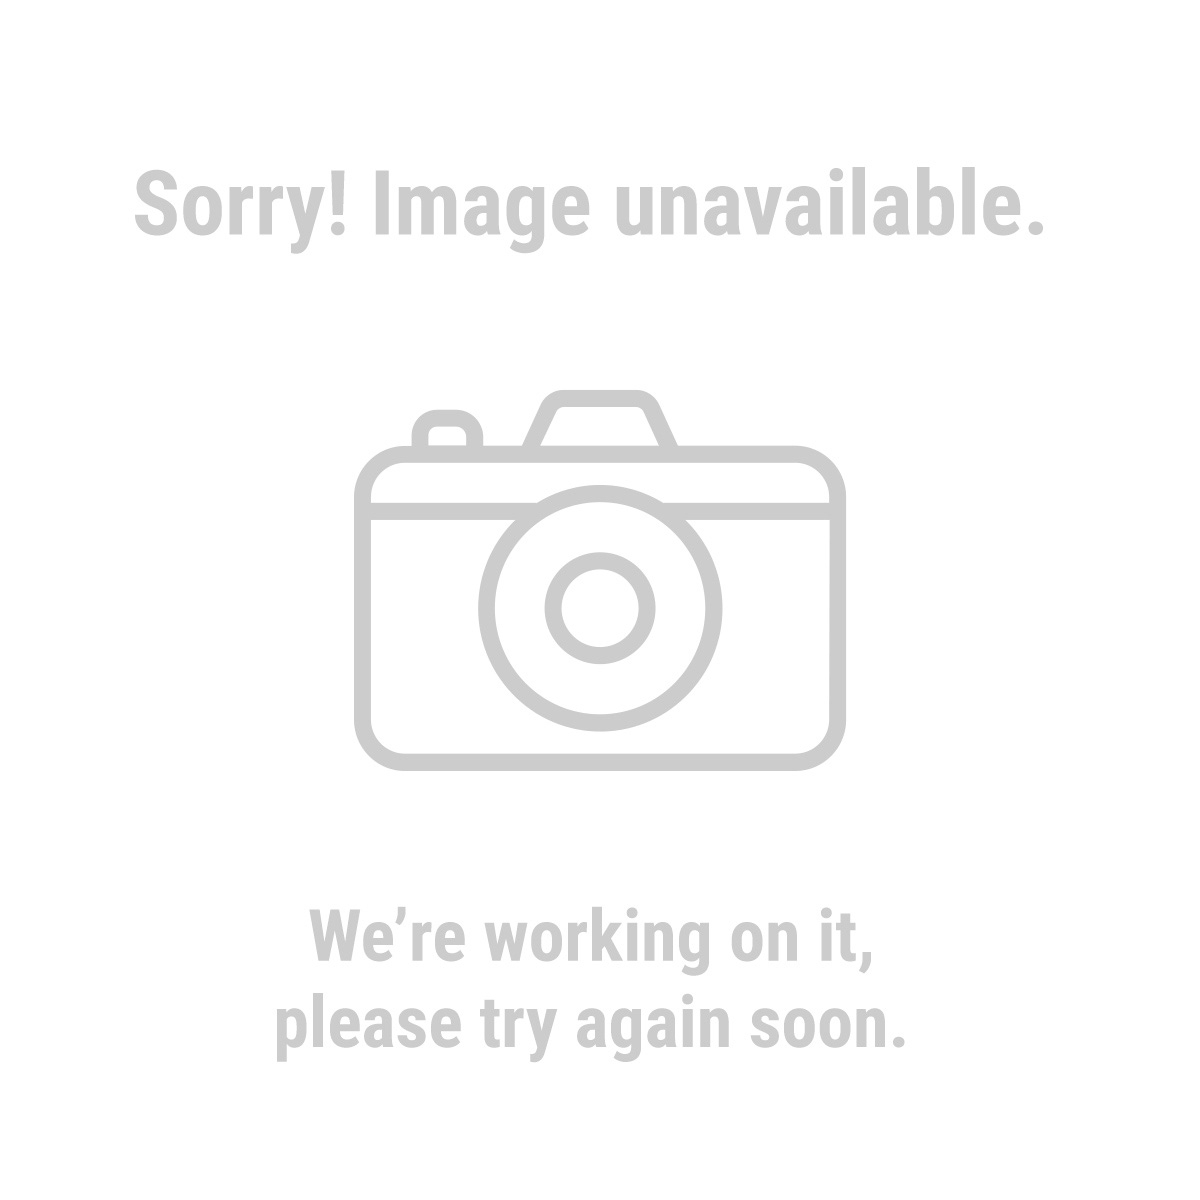 Pittsburgh 67800 2-In-1 Magnetic Laser Level